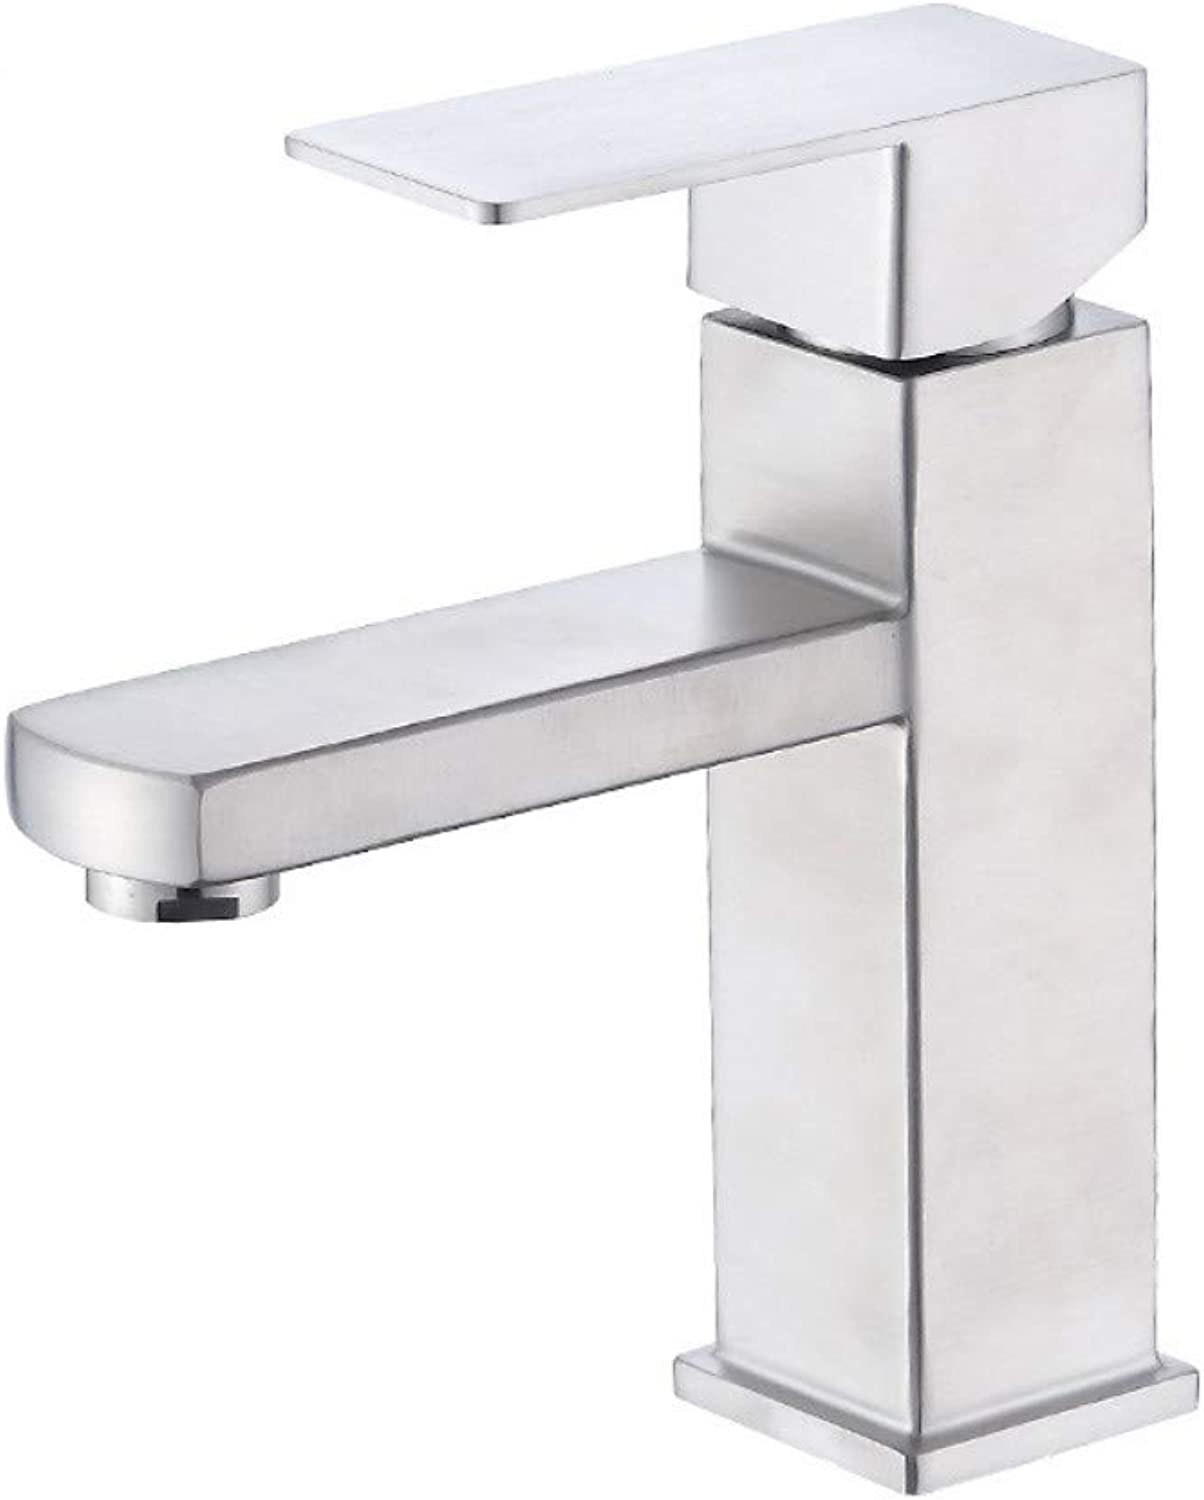 Stainless Steel Four-Sided Basin Hot and Cold Faucet Bathroom Counter Basin Wash Basin Mixer